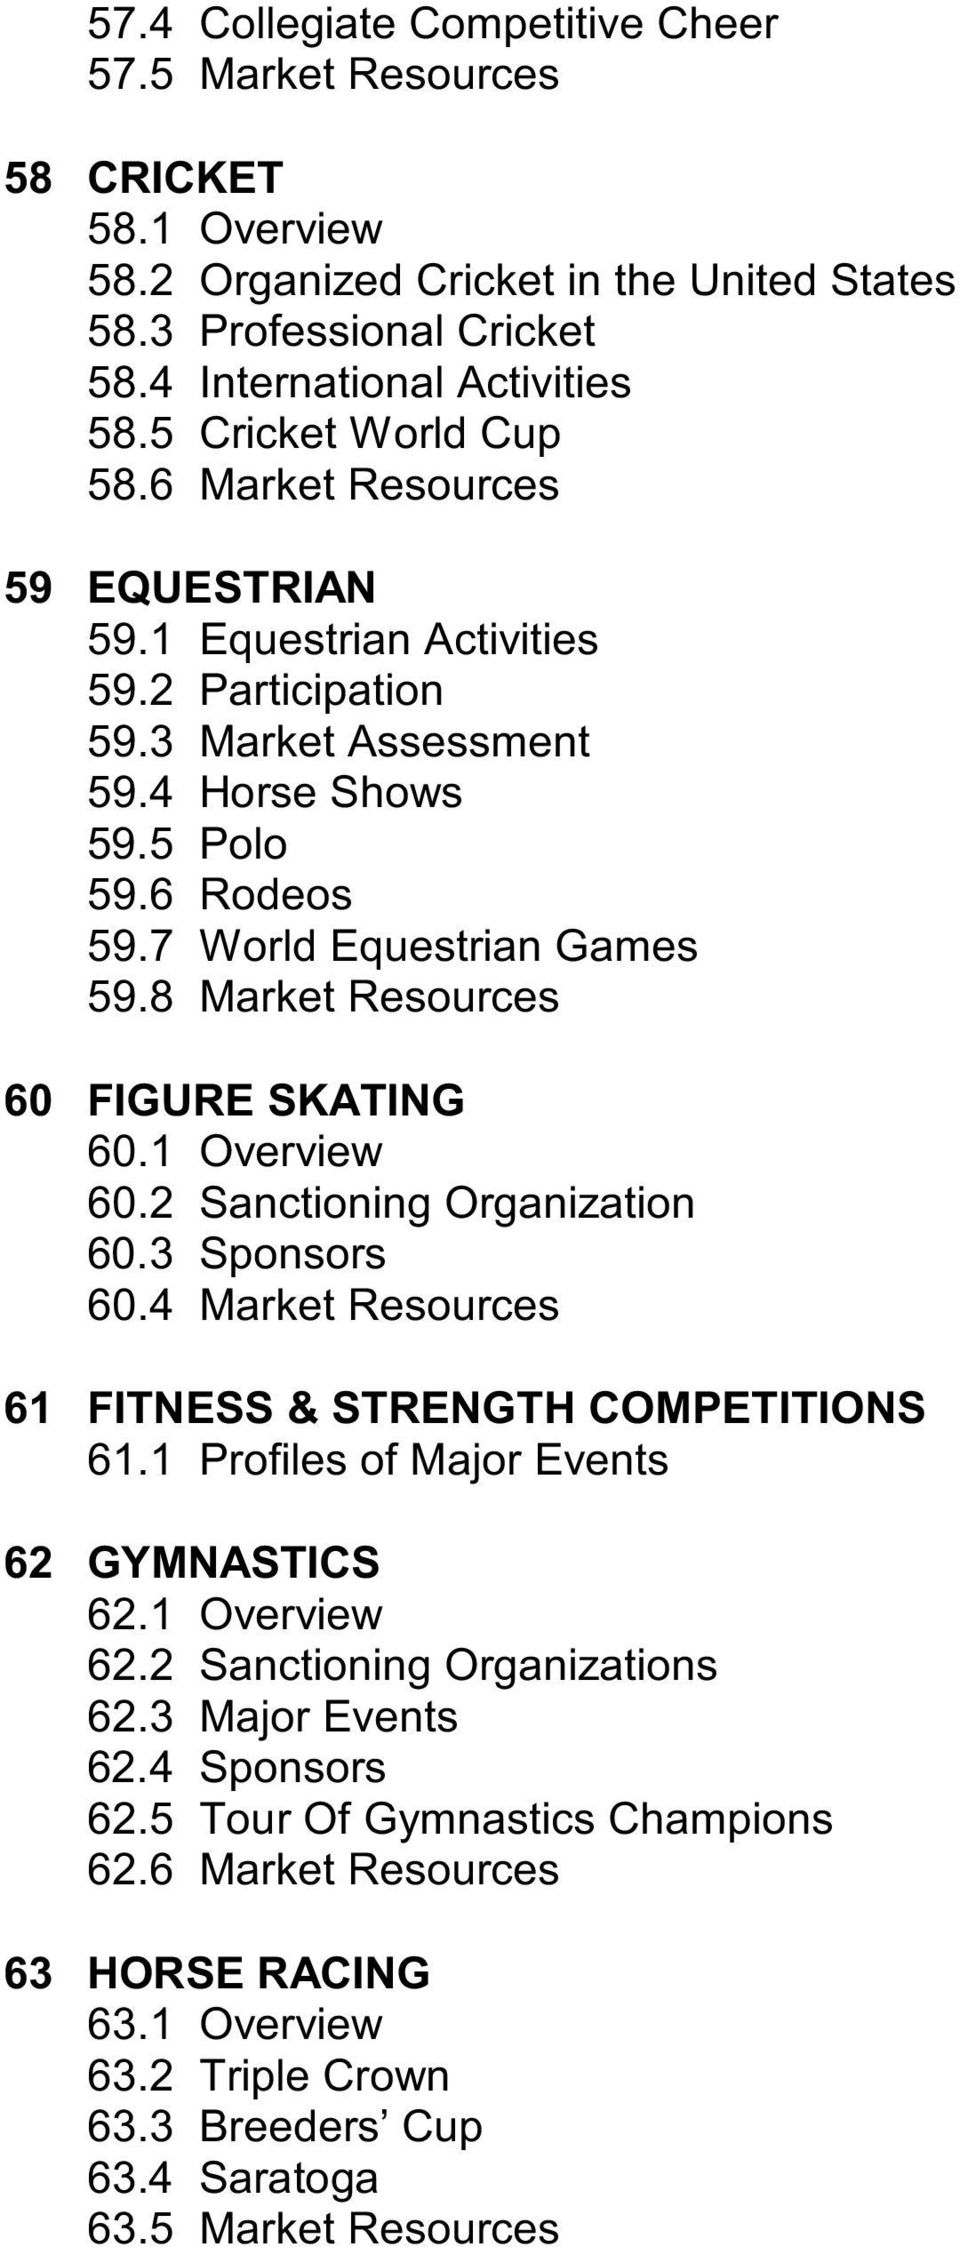 8 Market Resources 60 FIGURE SKATING 60.1 Overview 60.2 Sanctioning Organization 60.3 Sponsors 60.4 Market Resources 61 FITNESS & STRENGTH COMPETITIONS 61.1 Profiles of Major Events 62 GYMNASTICS 62.